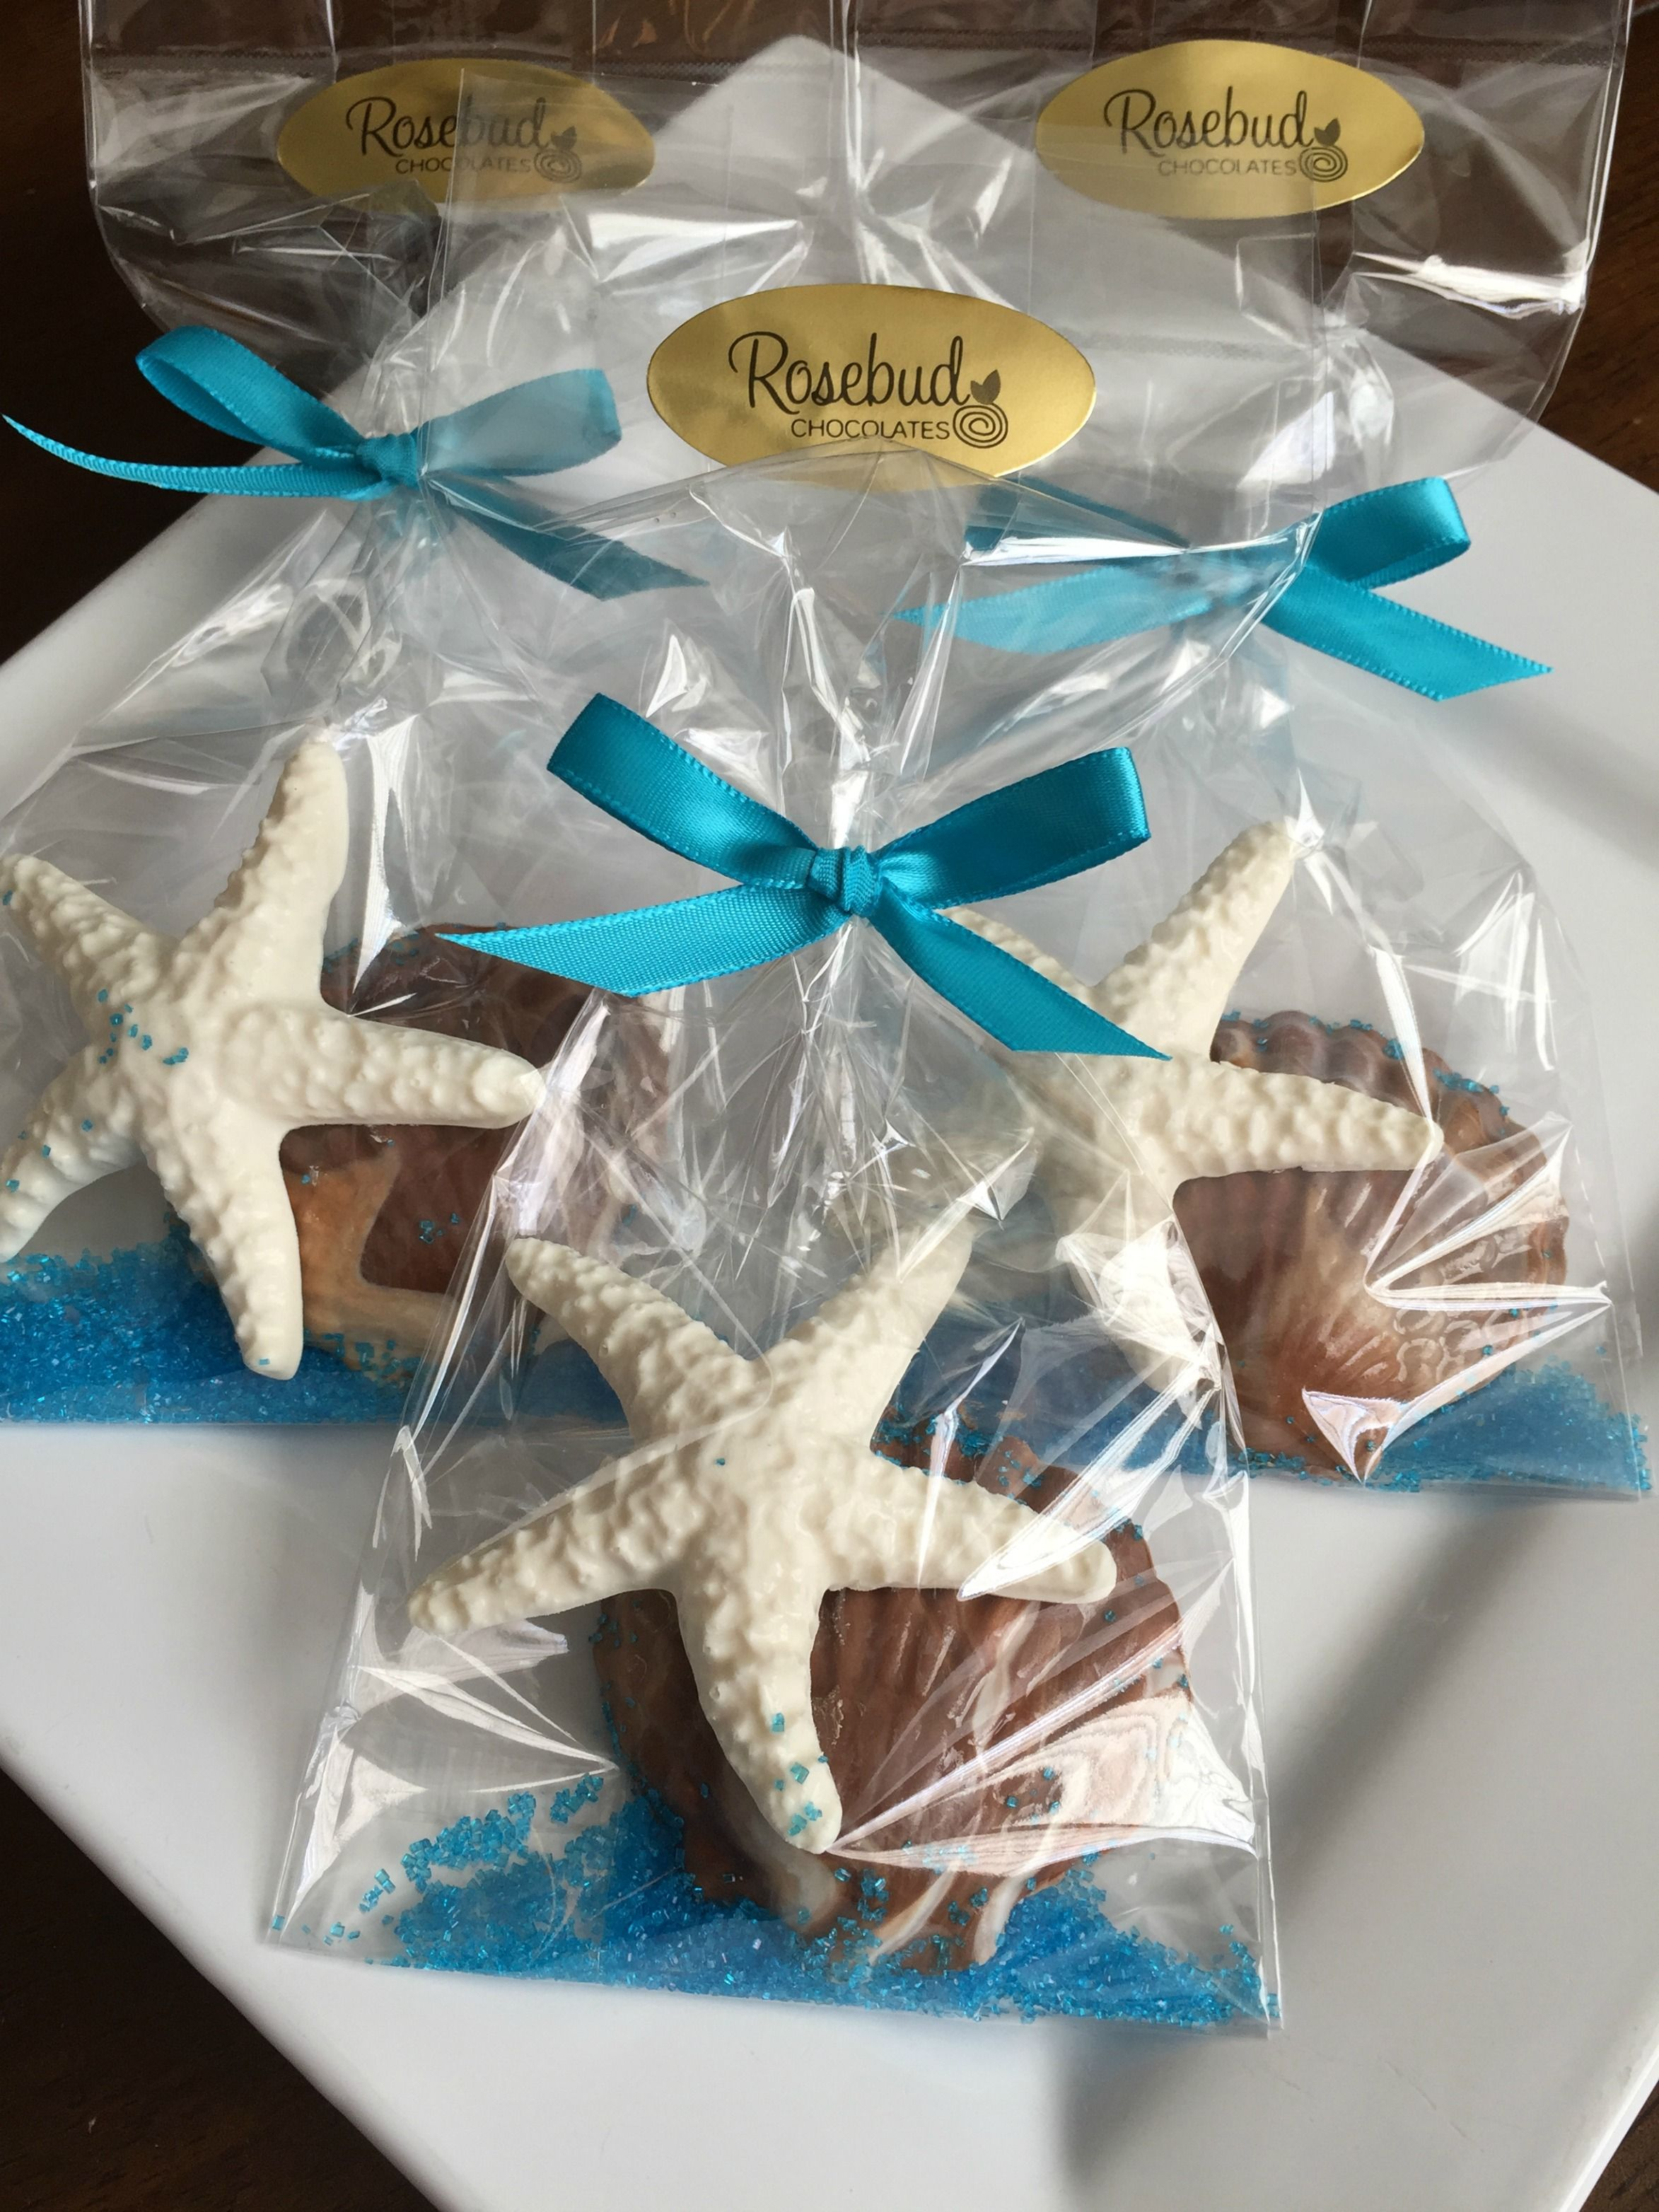 ideas for beach wedding party favors%0A Chocolate Starfish and Seashell Favors  Wedding  Bridal Shower   Anniversary  Birthday  Luau  Beach Theme DessertsBeach ThemesBeach